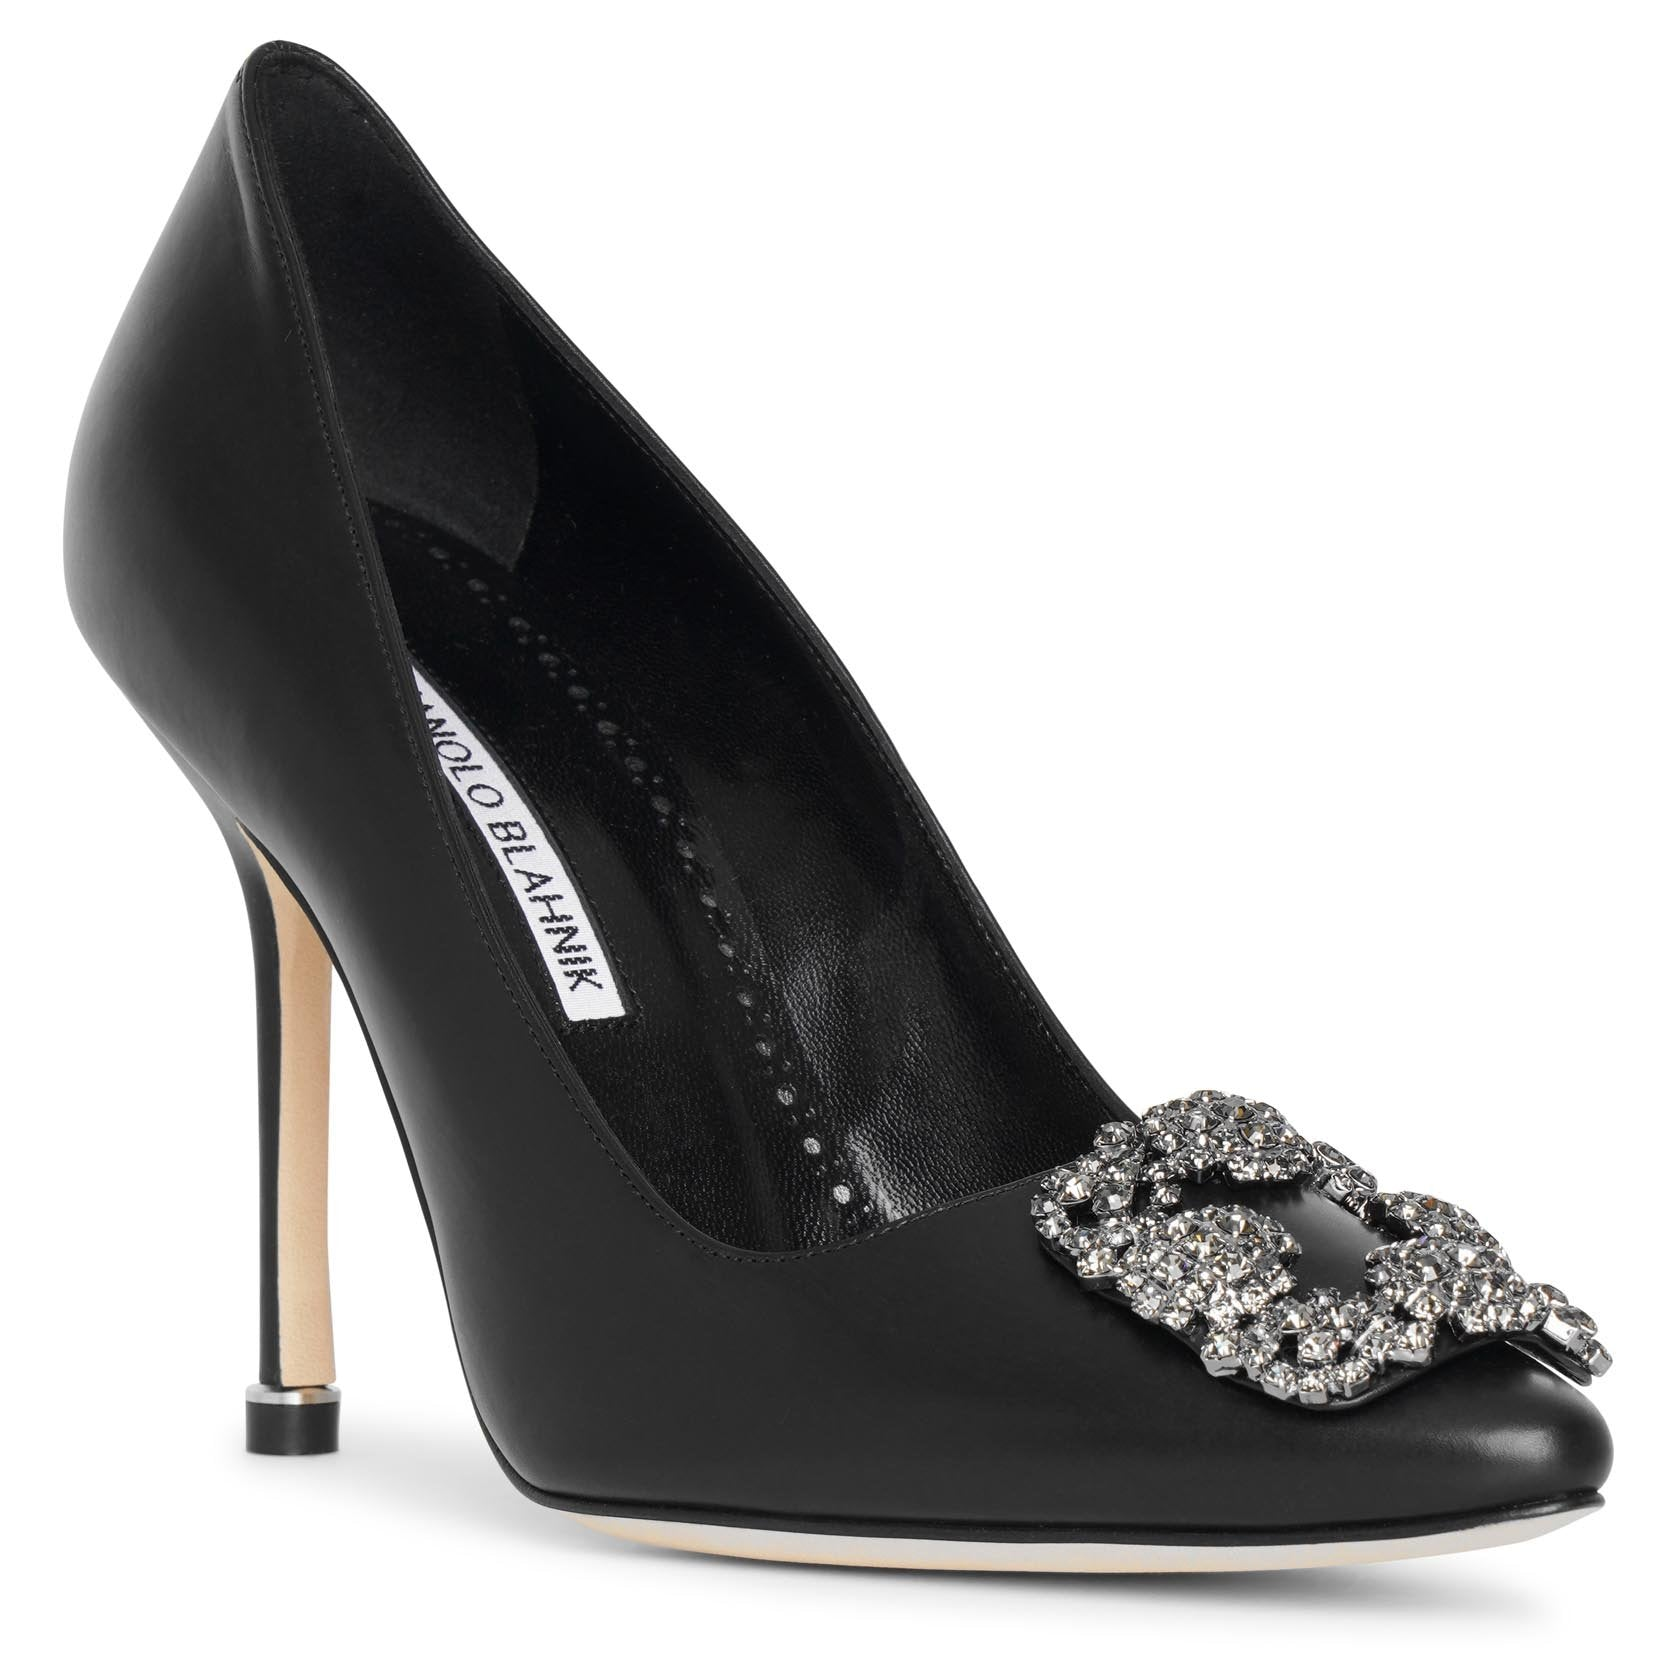 Hangisi 105 black leather pumps